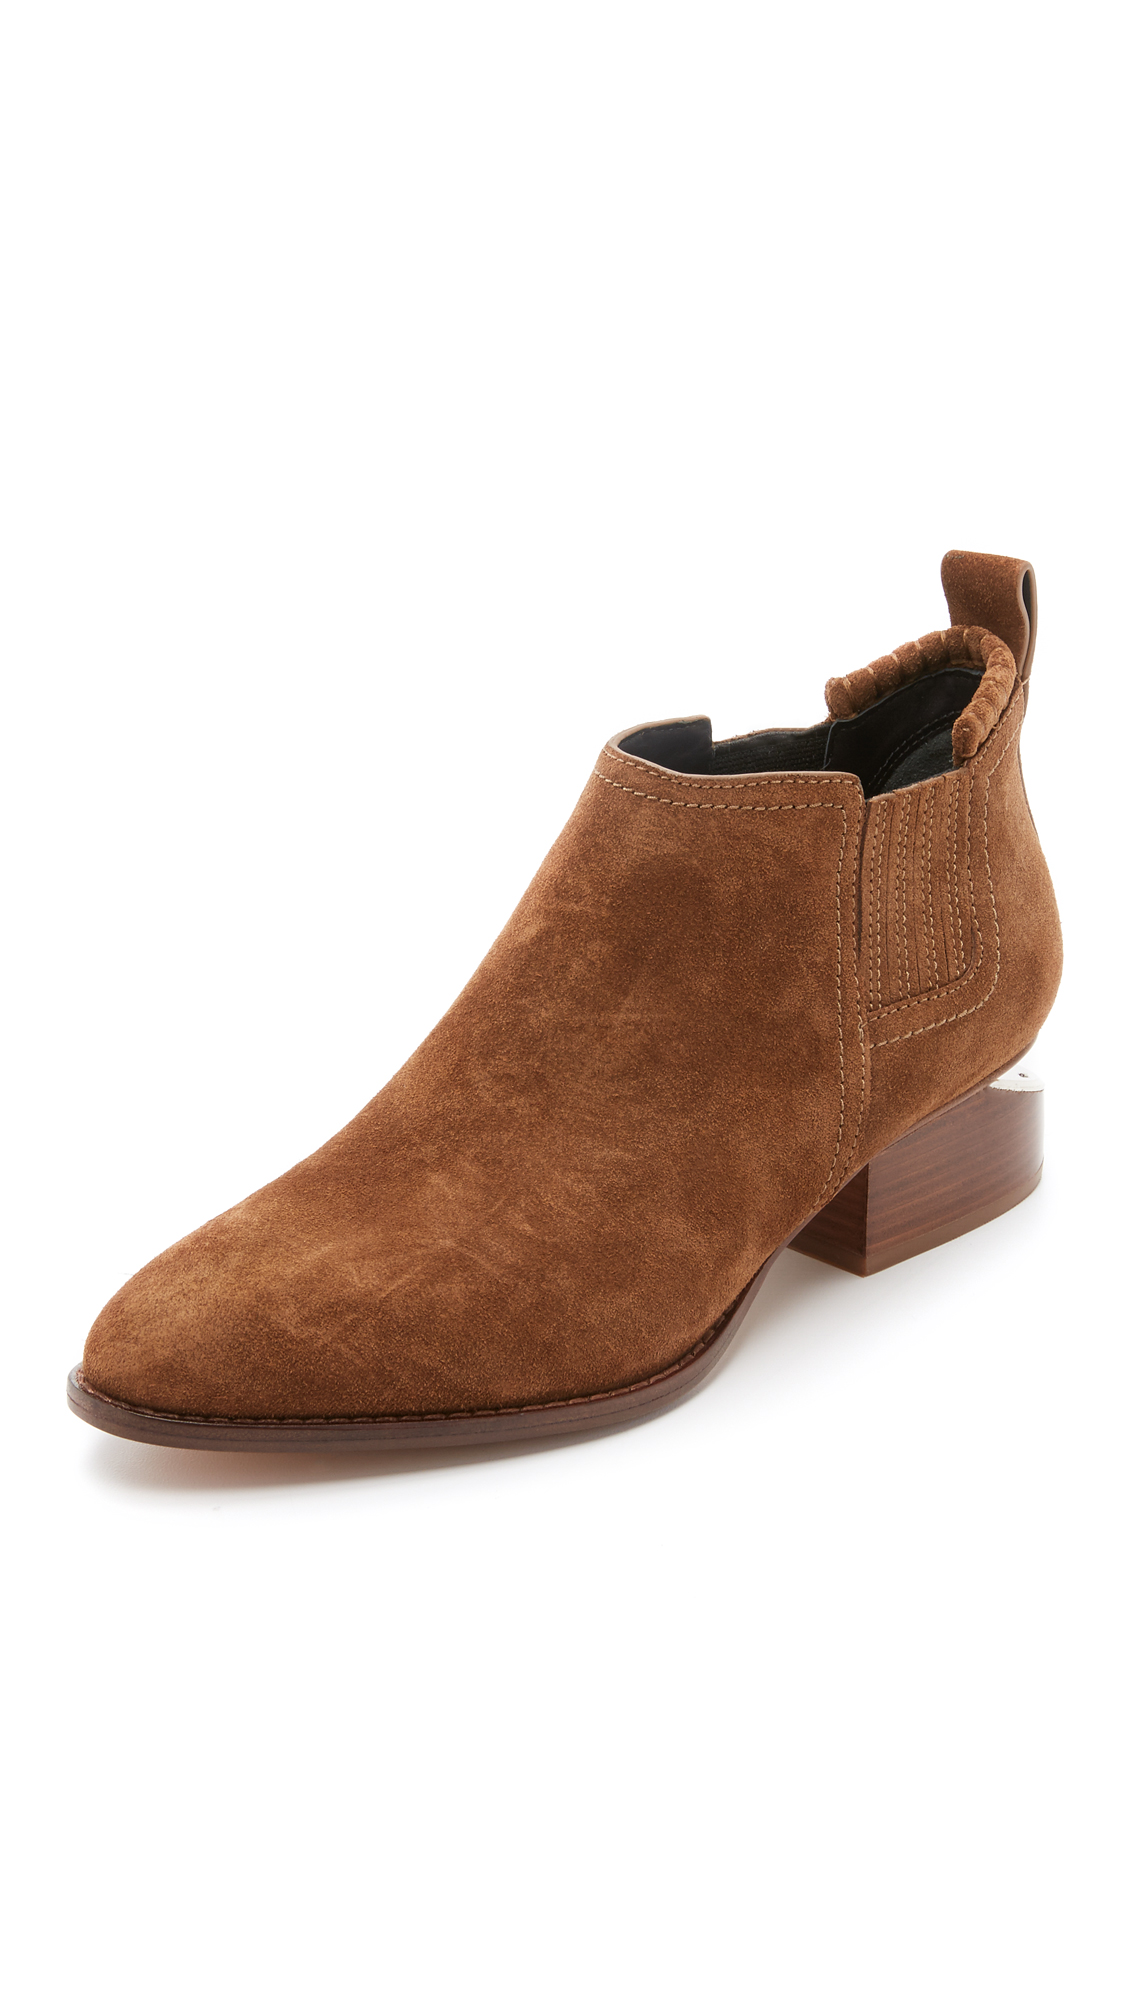 Woman Kori Suede Ankle Boots Light Brown, Dark Truffle